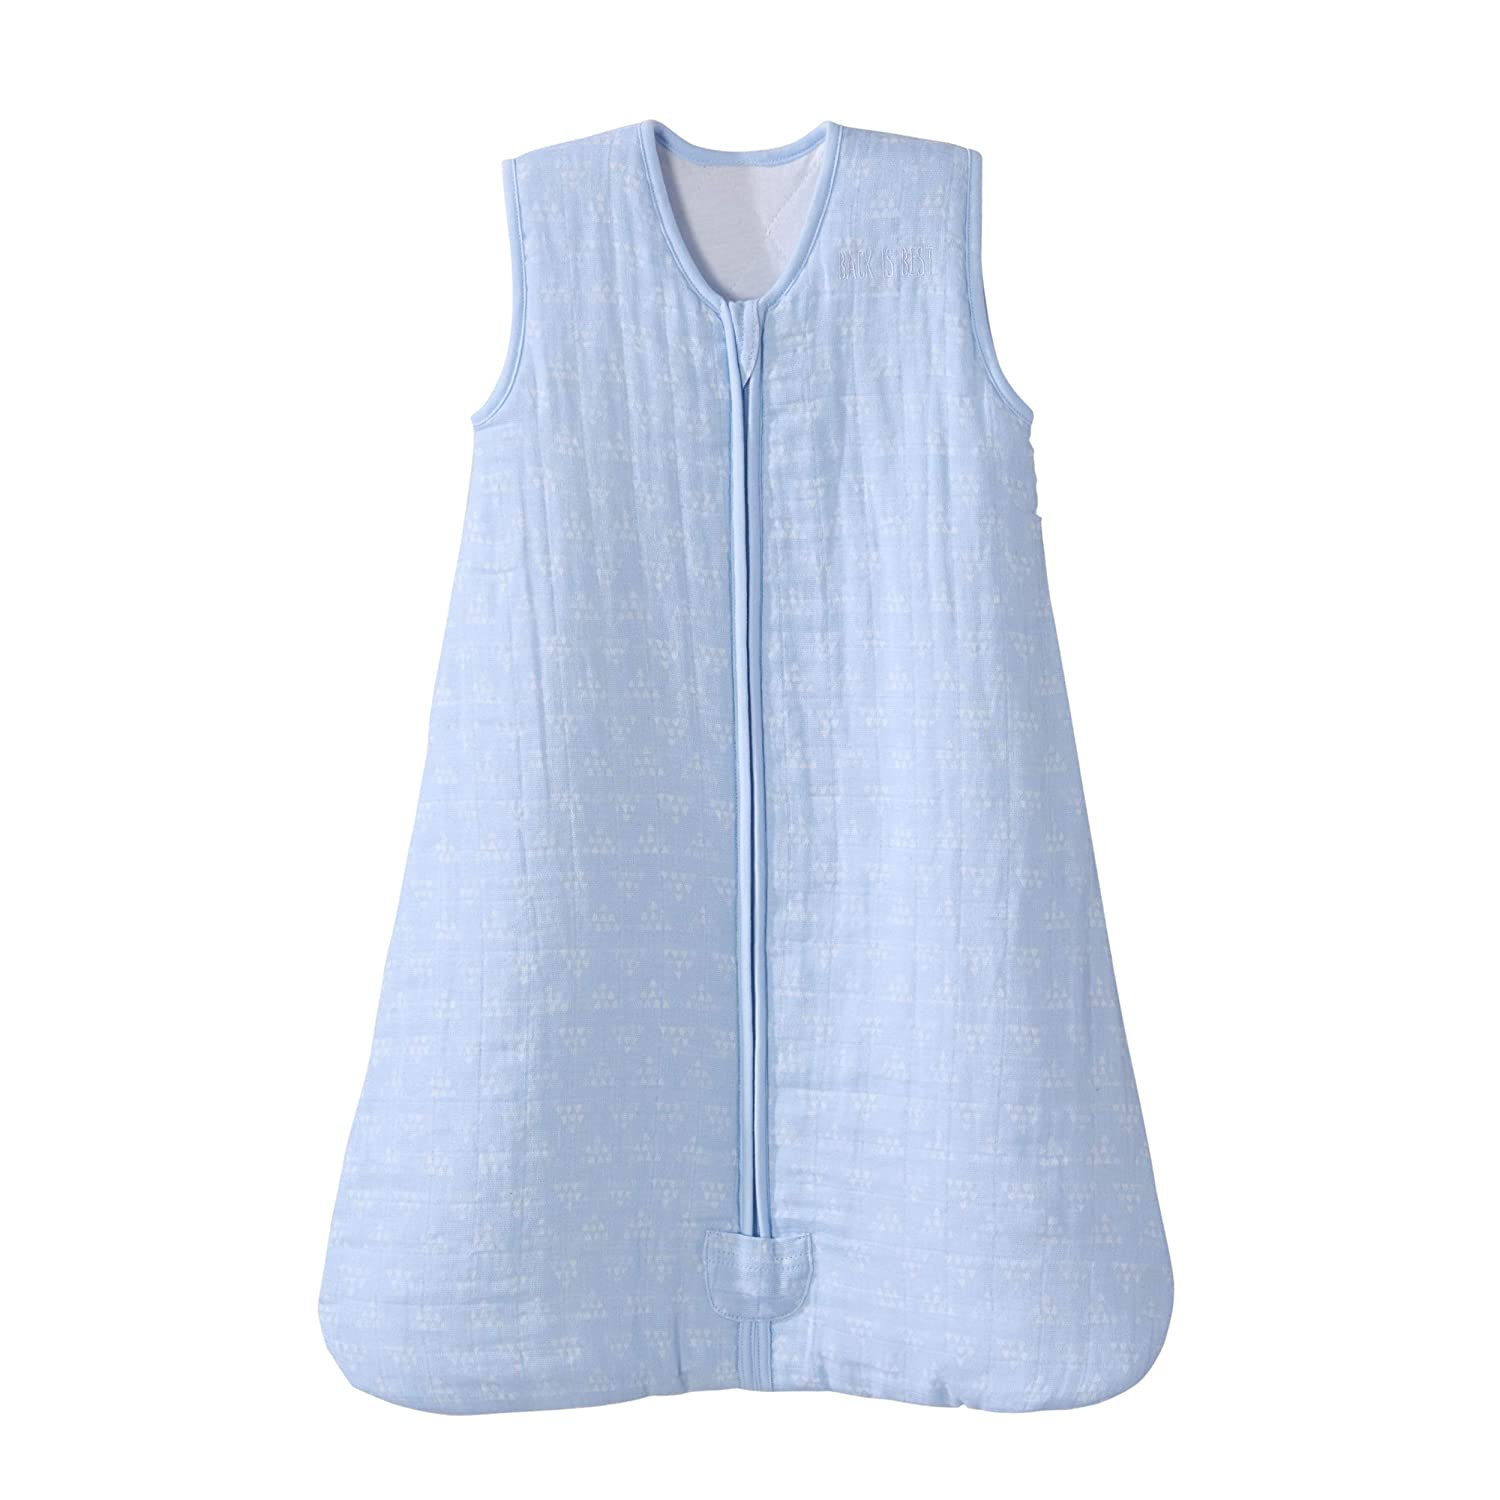 Halo SLEEPWEAR ユニセックスベビー Small Pyramid Blue B07K41FJQR